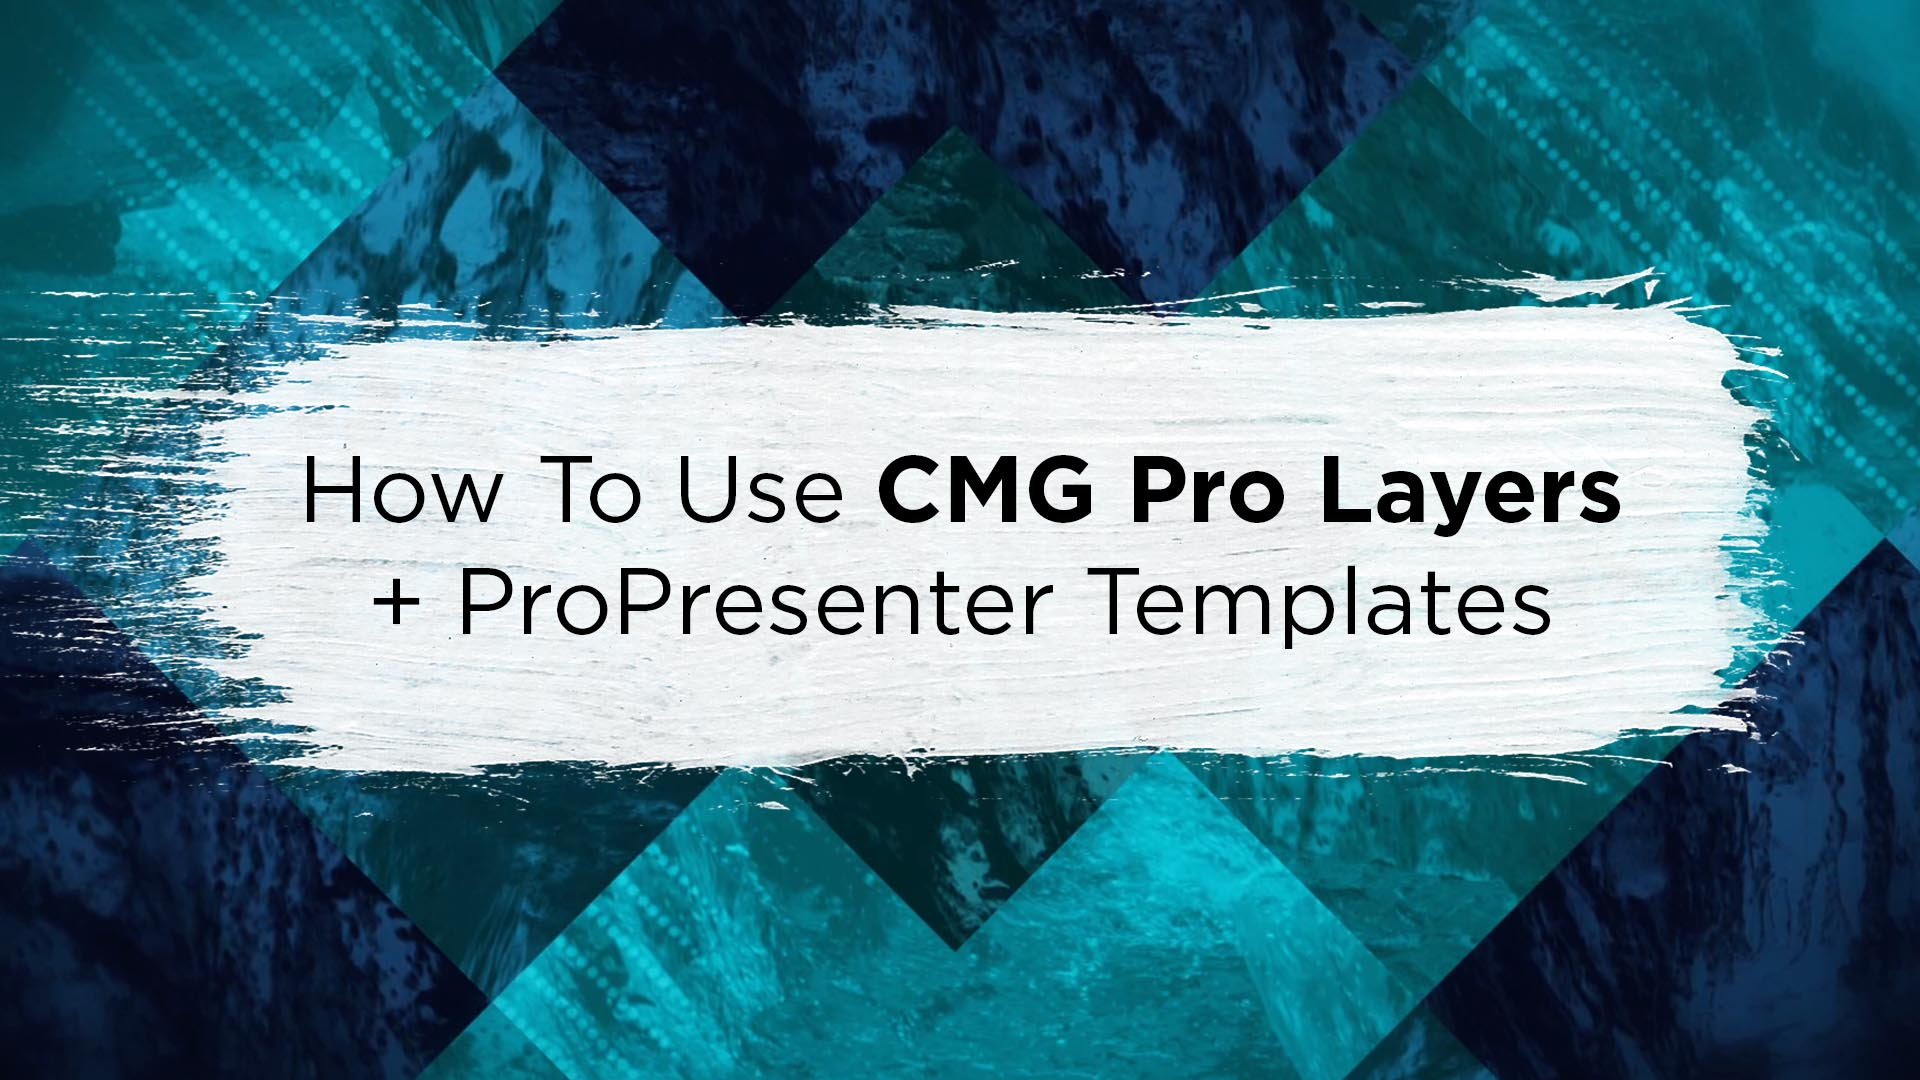 How To Use CMG Pro Layers and ProPresenter Templates – CMG